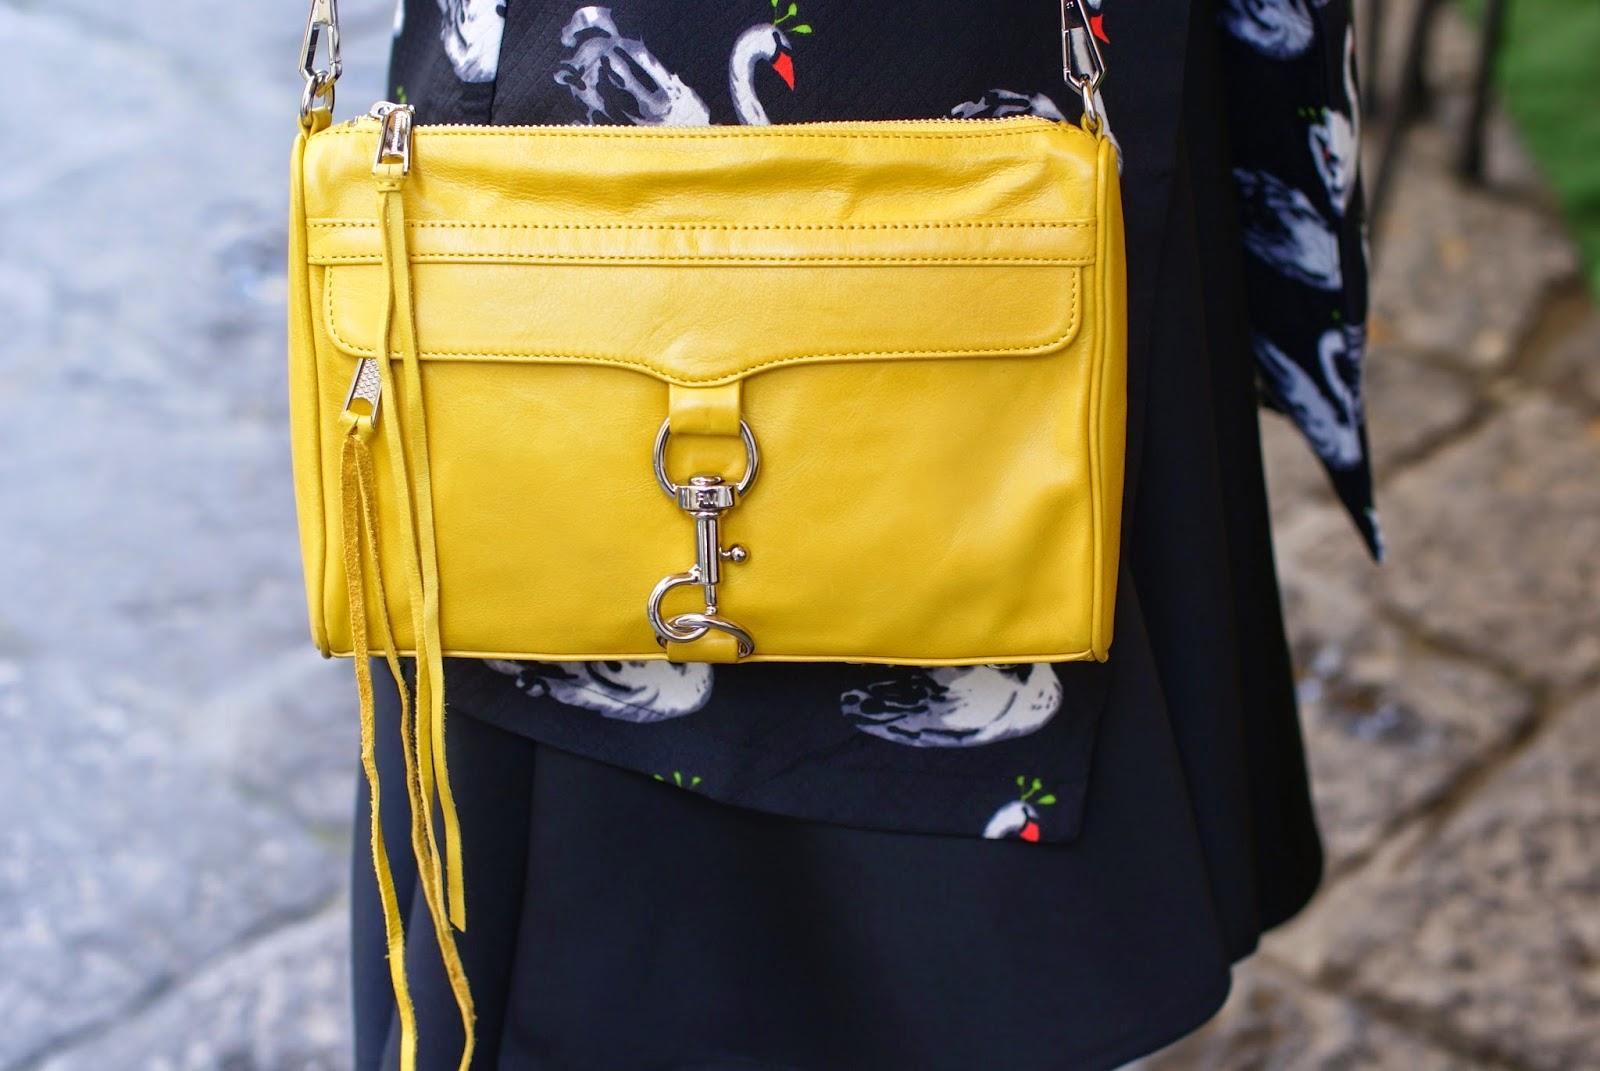 Rebecca Minkoff MAC clutch, yellow MAC bag, Fashion and Cookies fashion blogger, fashion blog